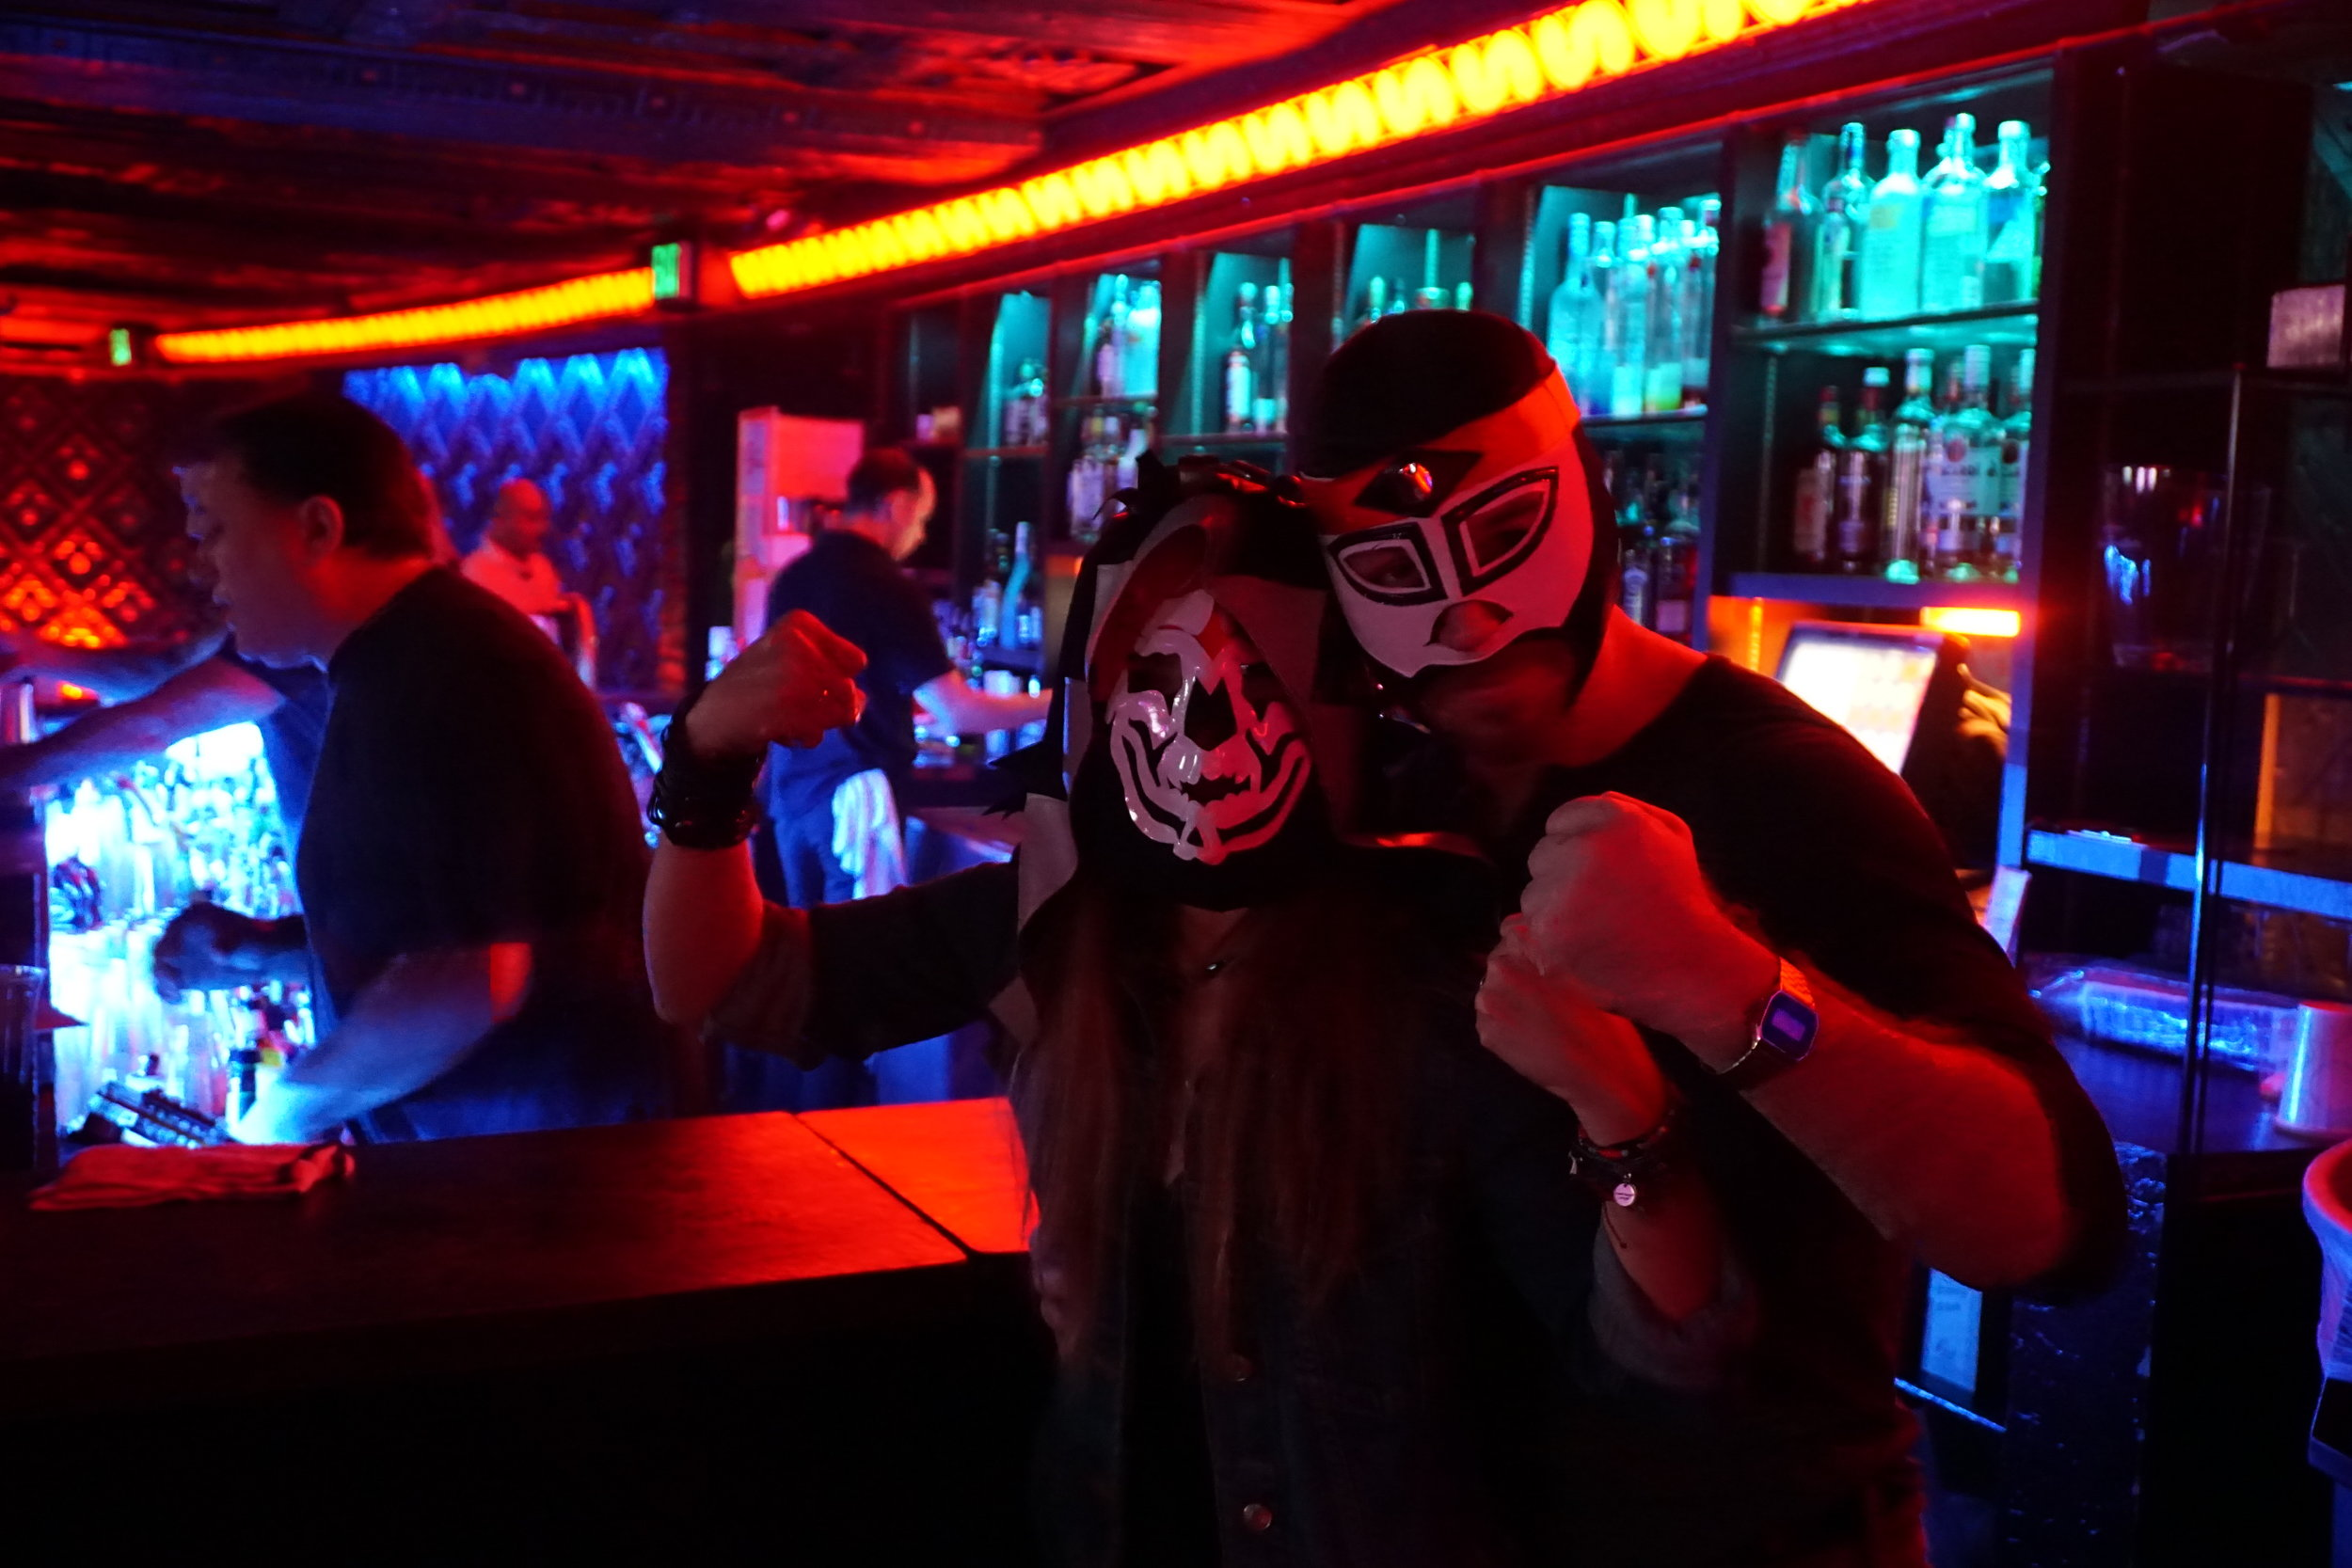 masked fans at the bar by Andrea Antolini